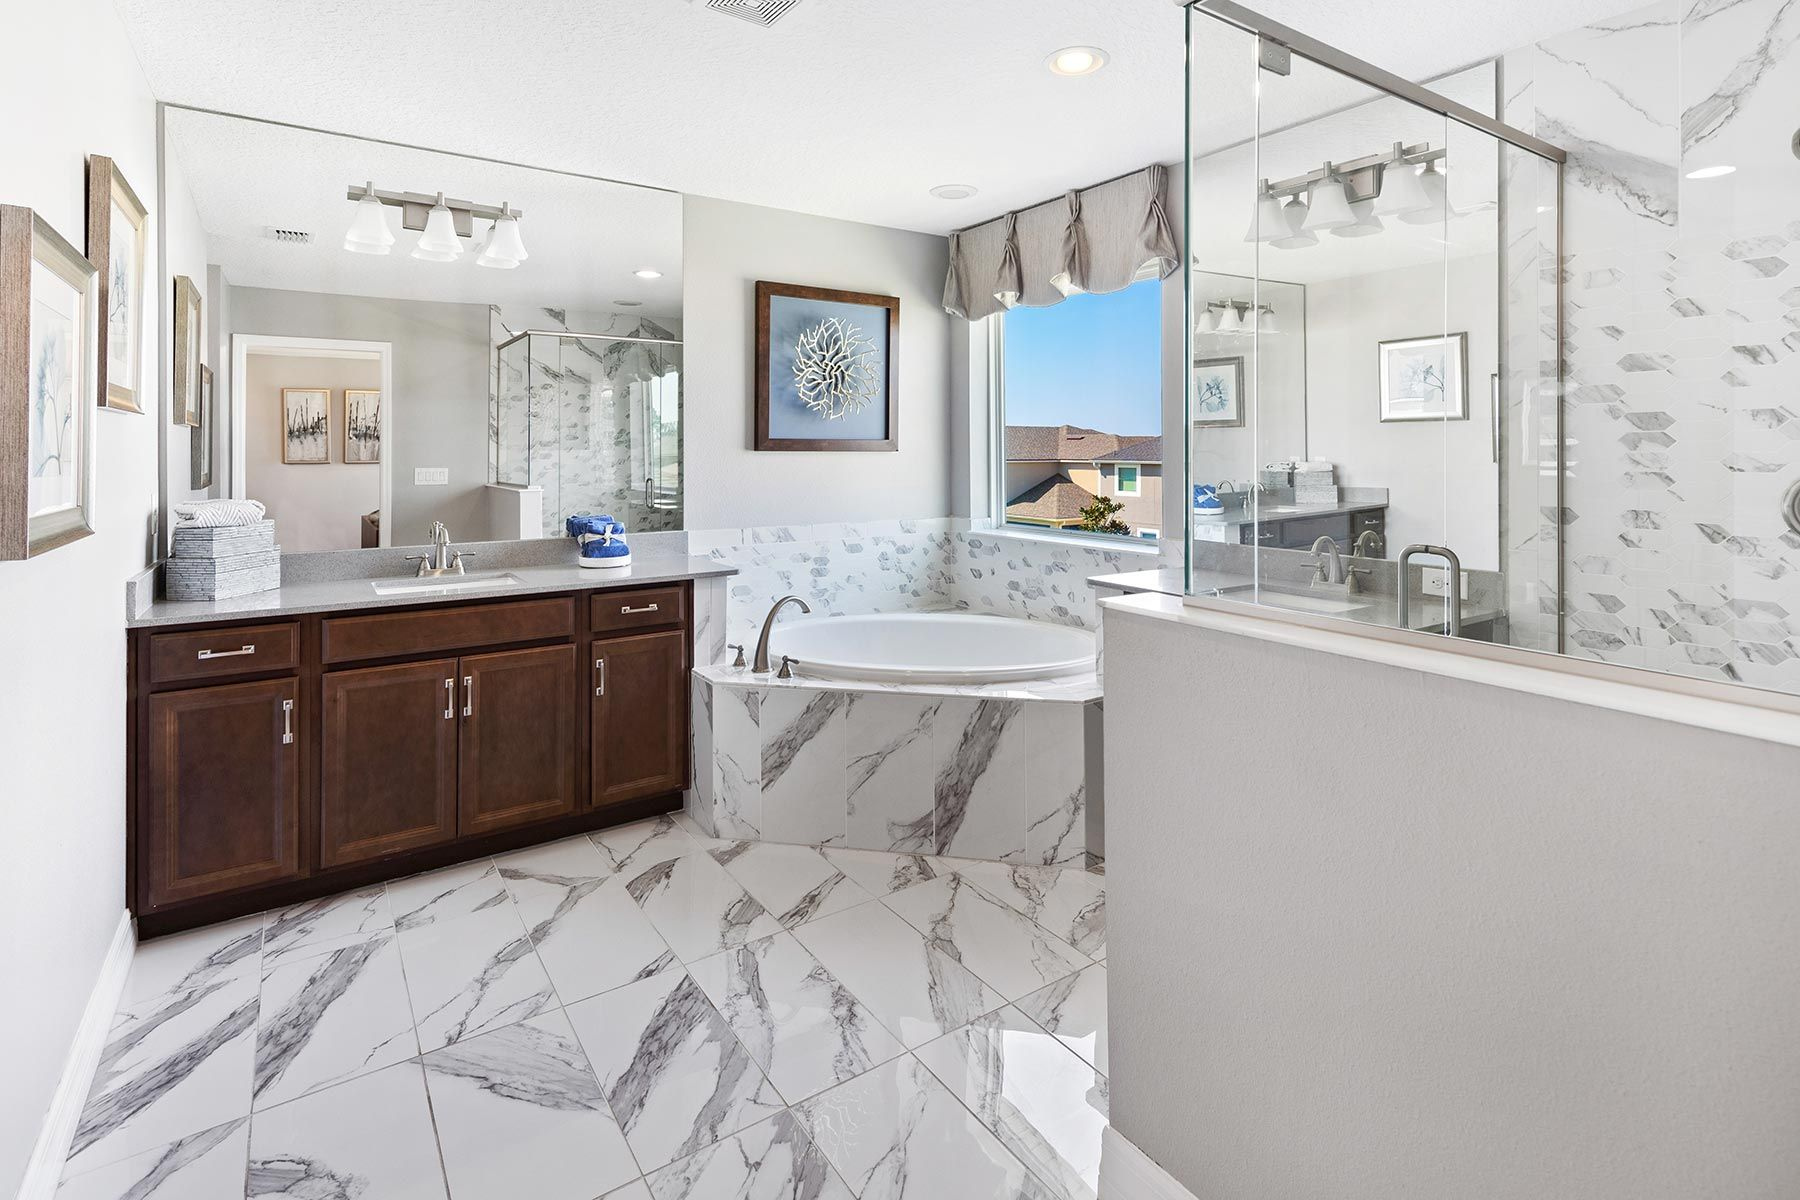 Bathroom featured in the Kensington By Mattamy Homes in Orlando, FL